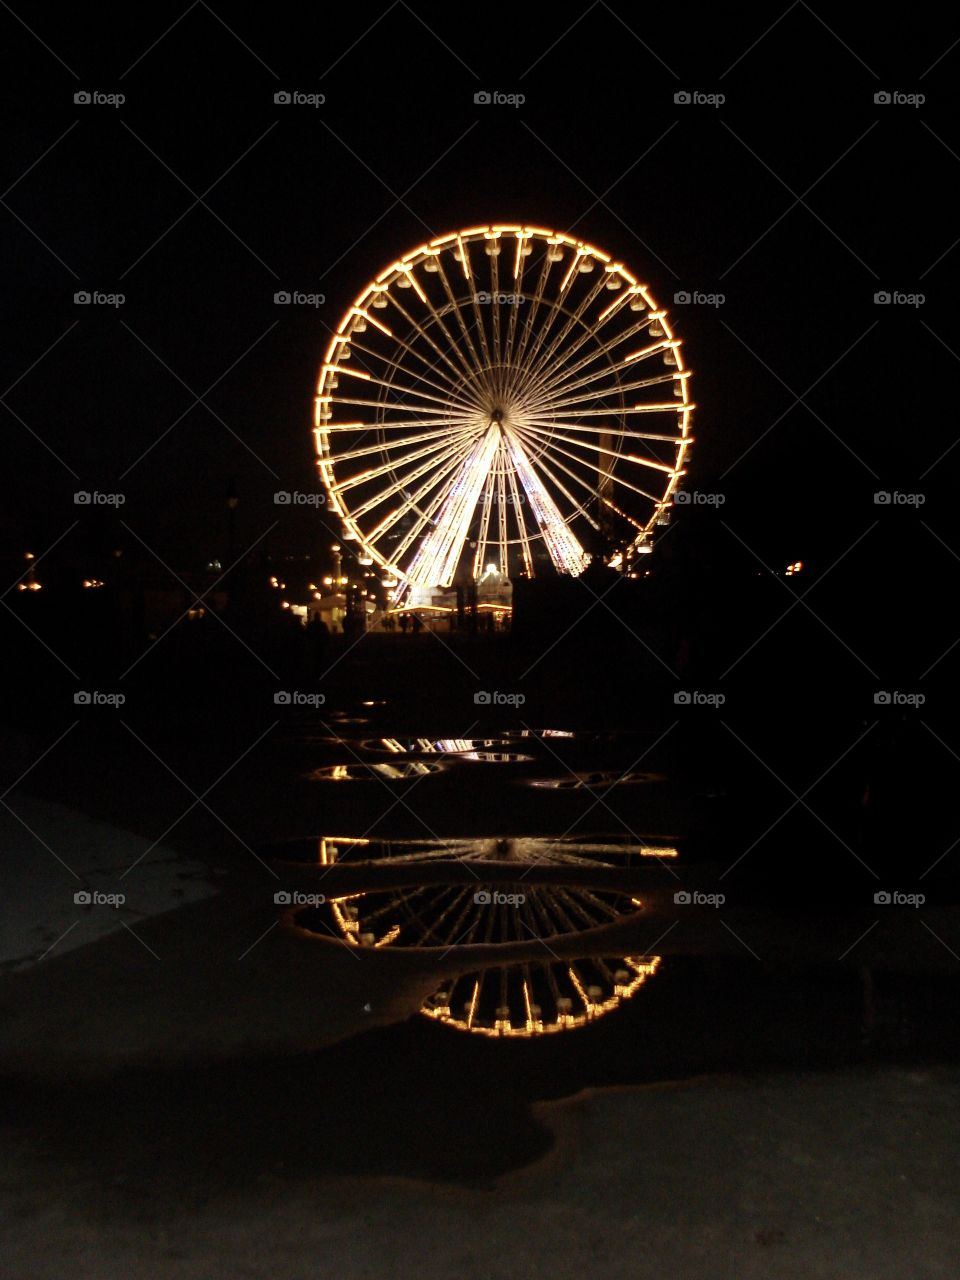 Reflection of Ferris wheel in puddles of water in the city of Paris, France at night.